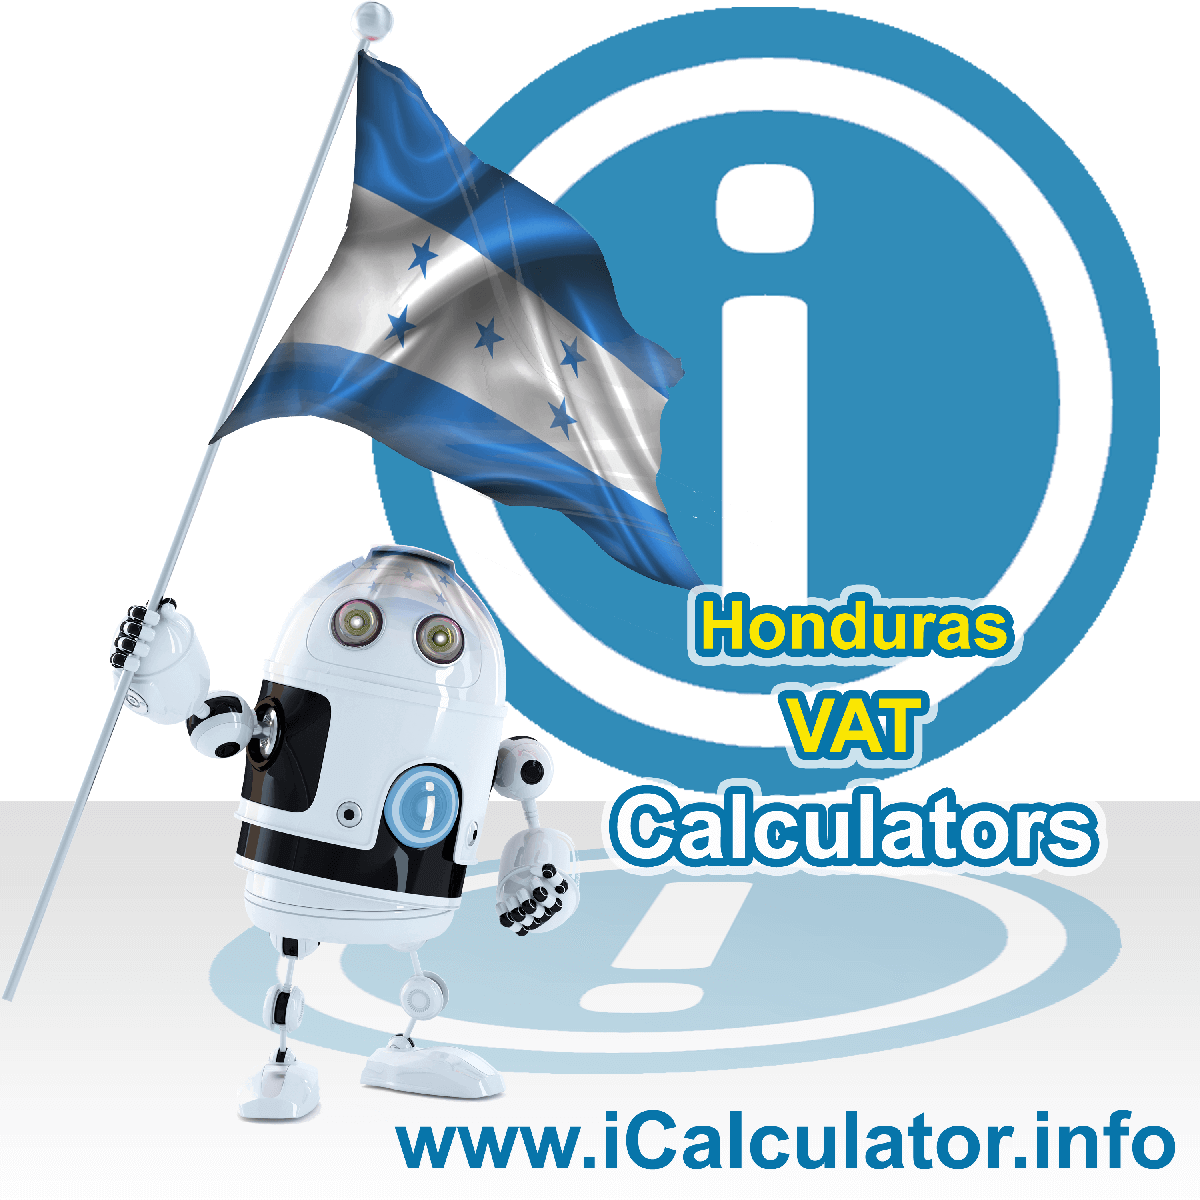 Honduras VAT Calculator. This image shows the Honduras flag and information relating to the VAT formula used for calculating Value Added Tax in Honduras using the Honduras VAT Calculator in 2020